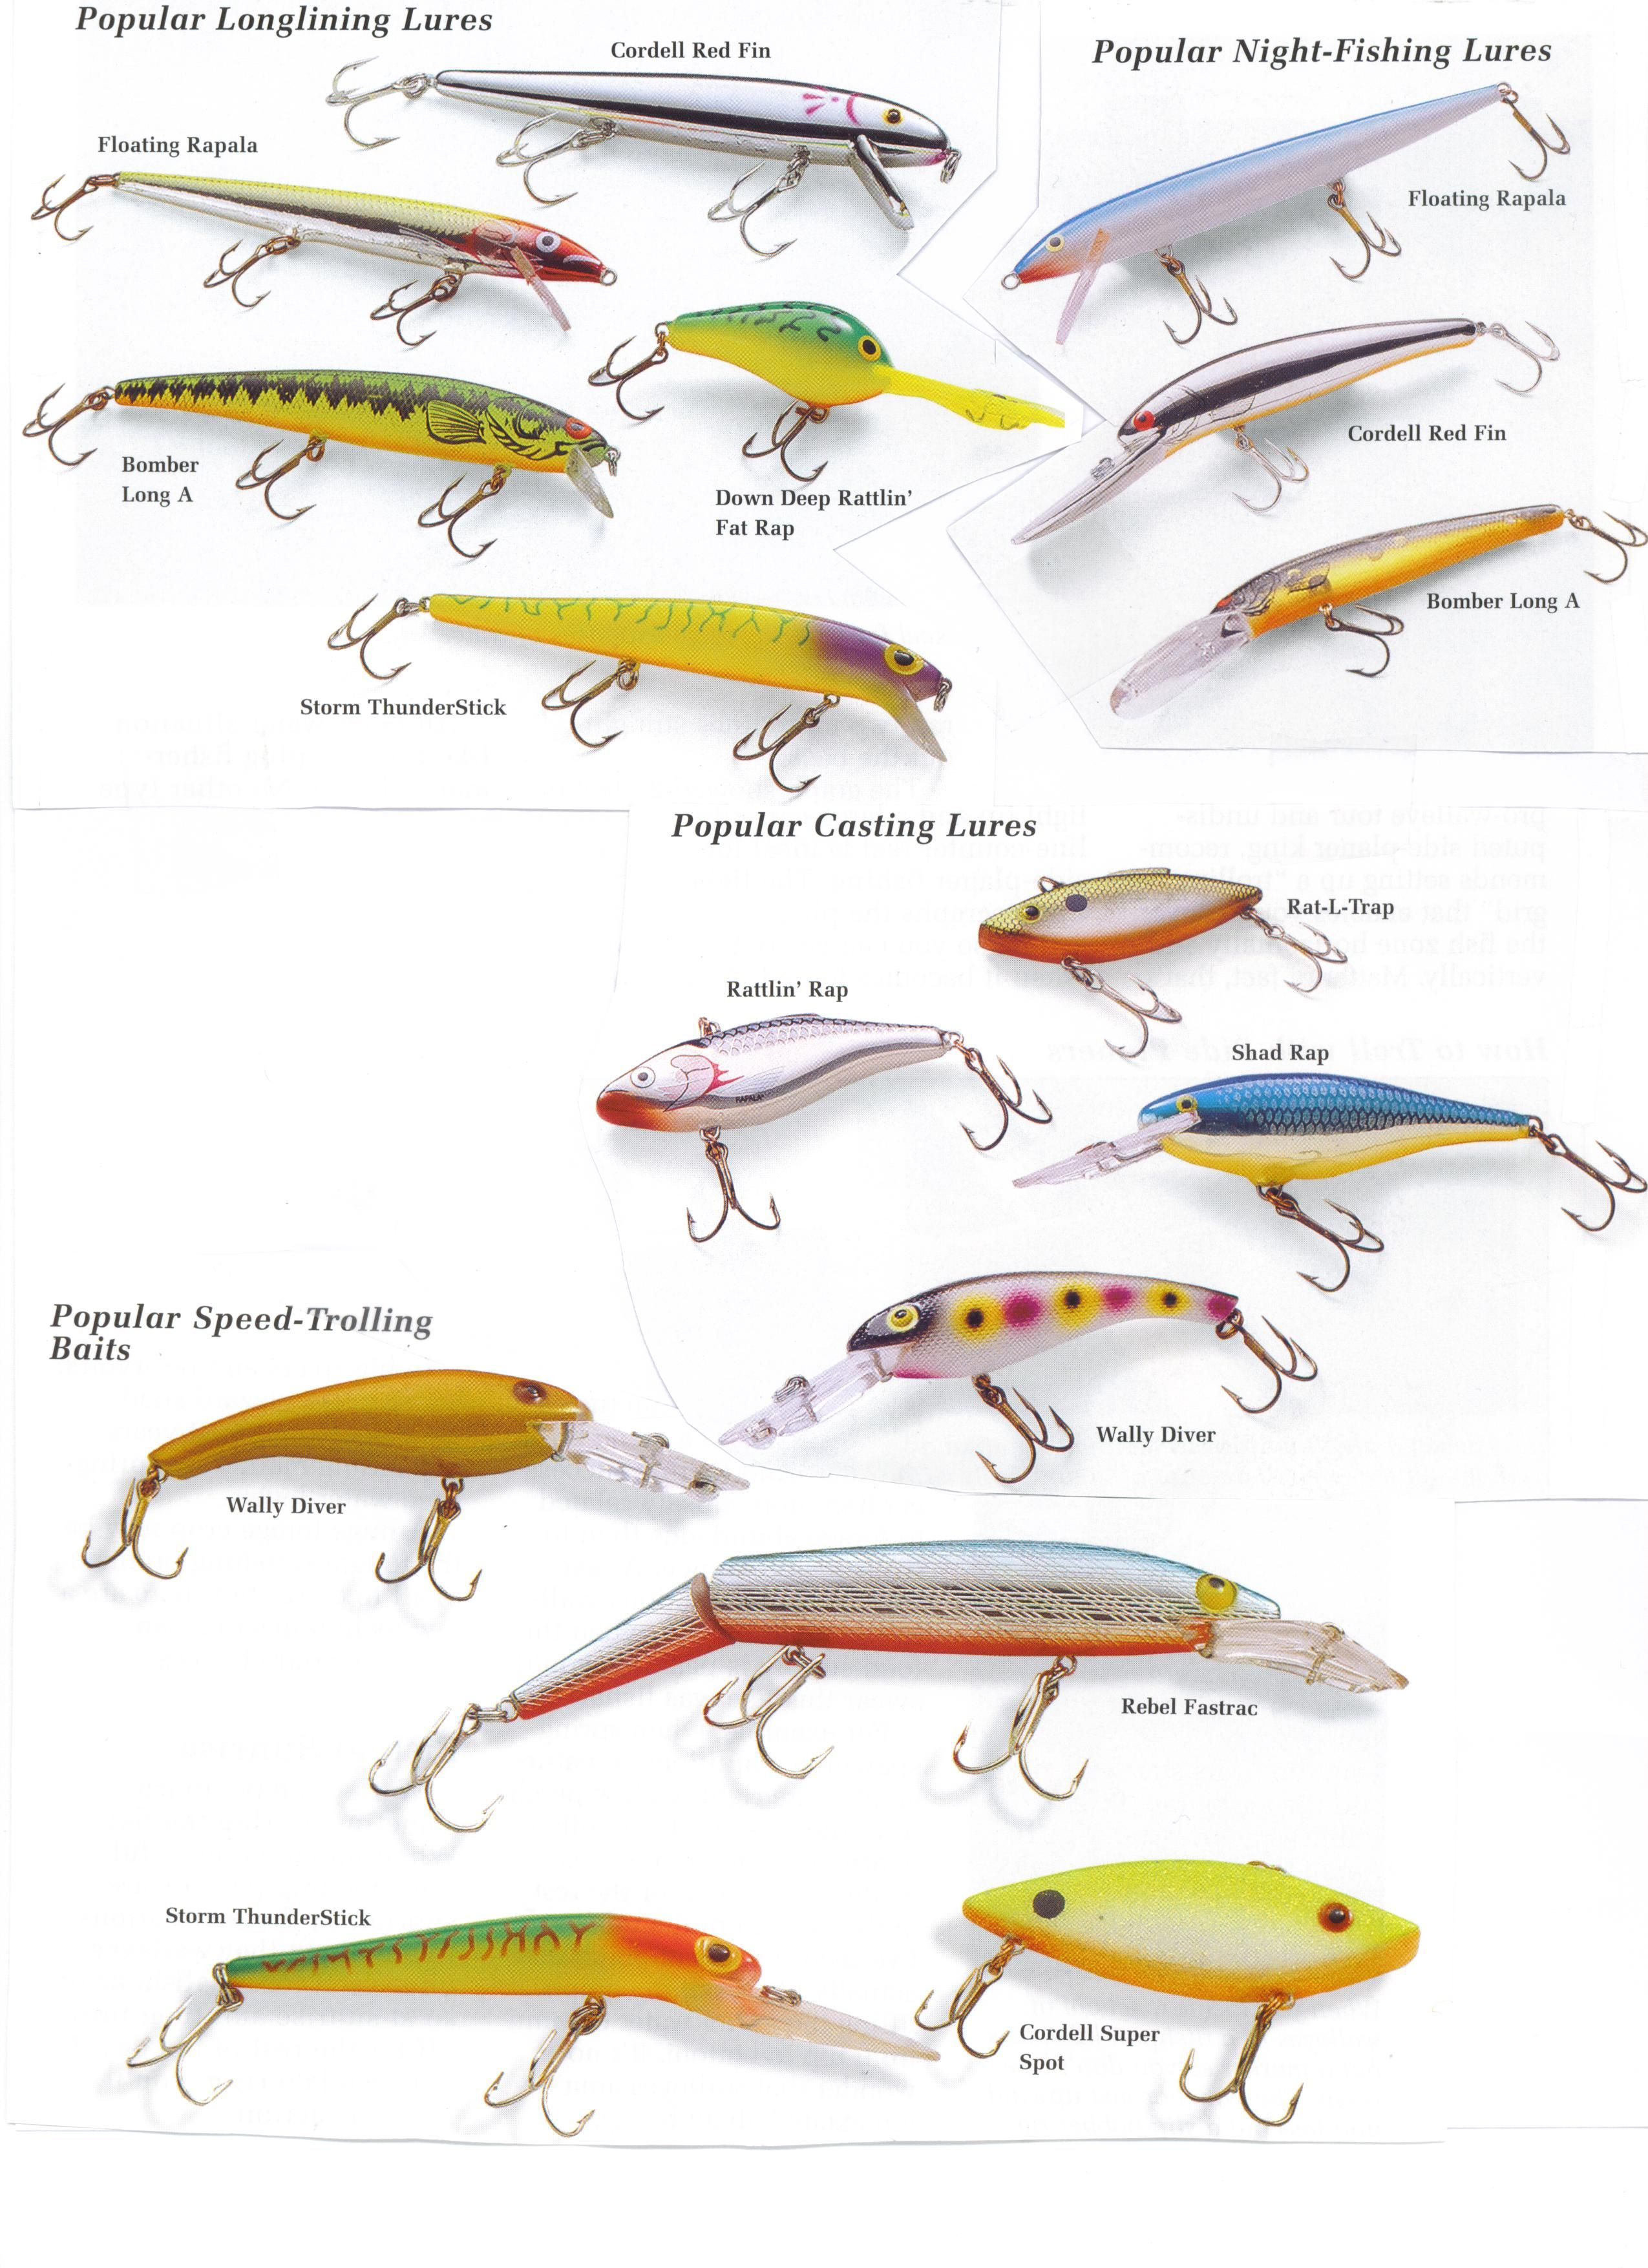 Best Fishing Lures Trustworthy Fishing Equipment Bass Fishing Lures Saltwater Fishing Lures Fishing Lures